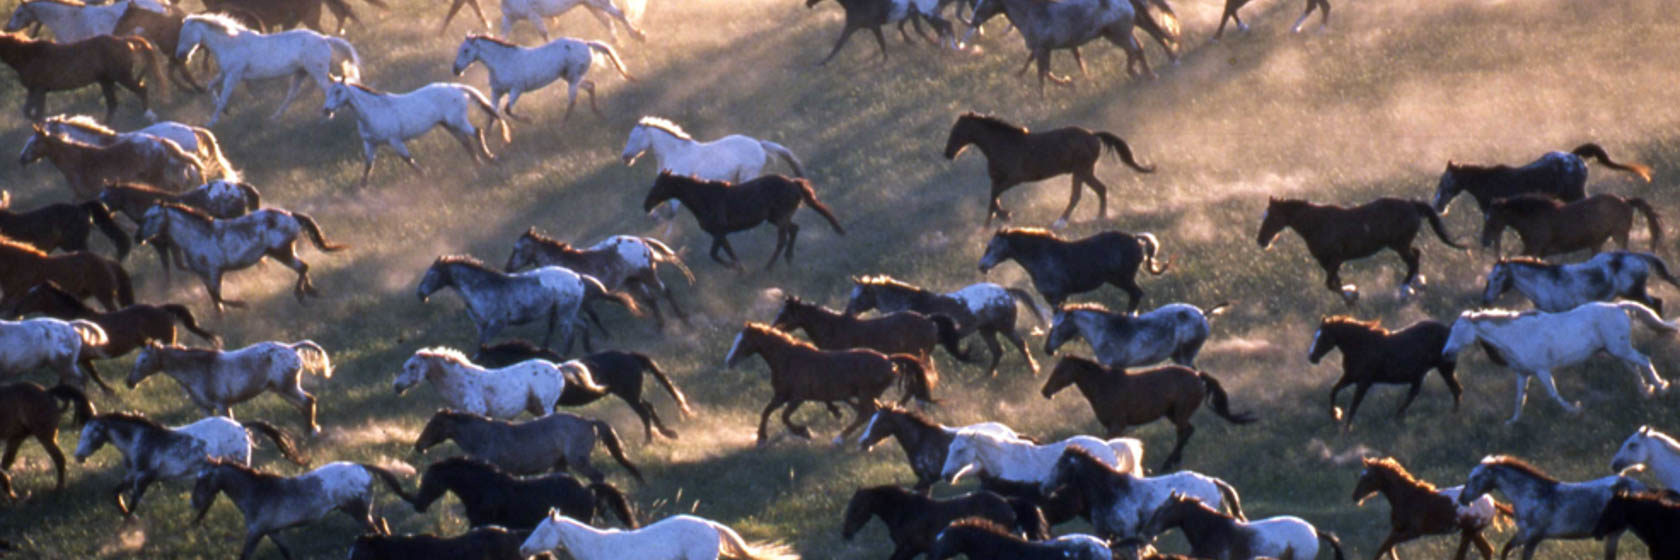 Large group of horses running